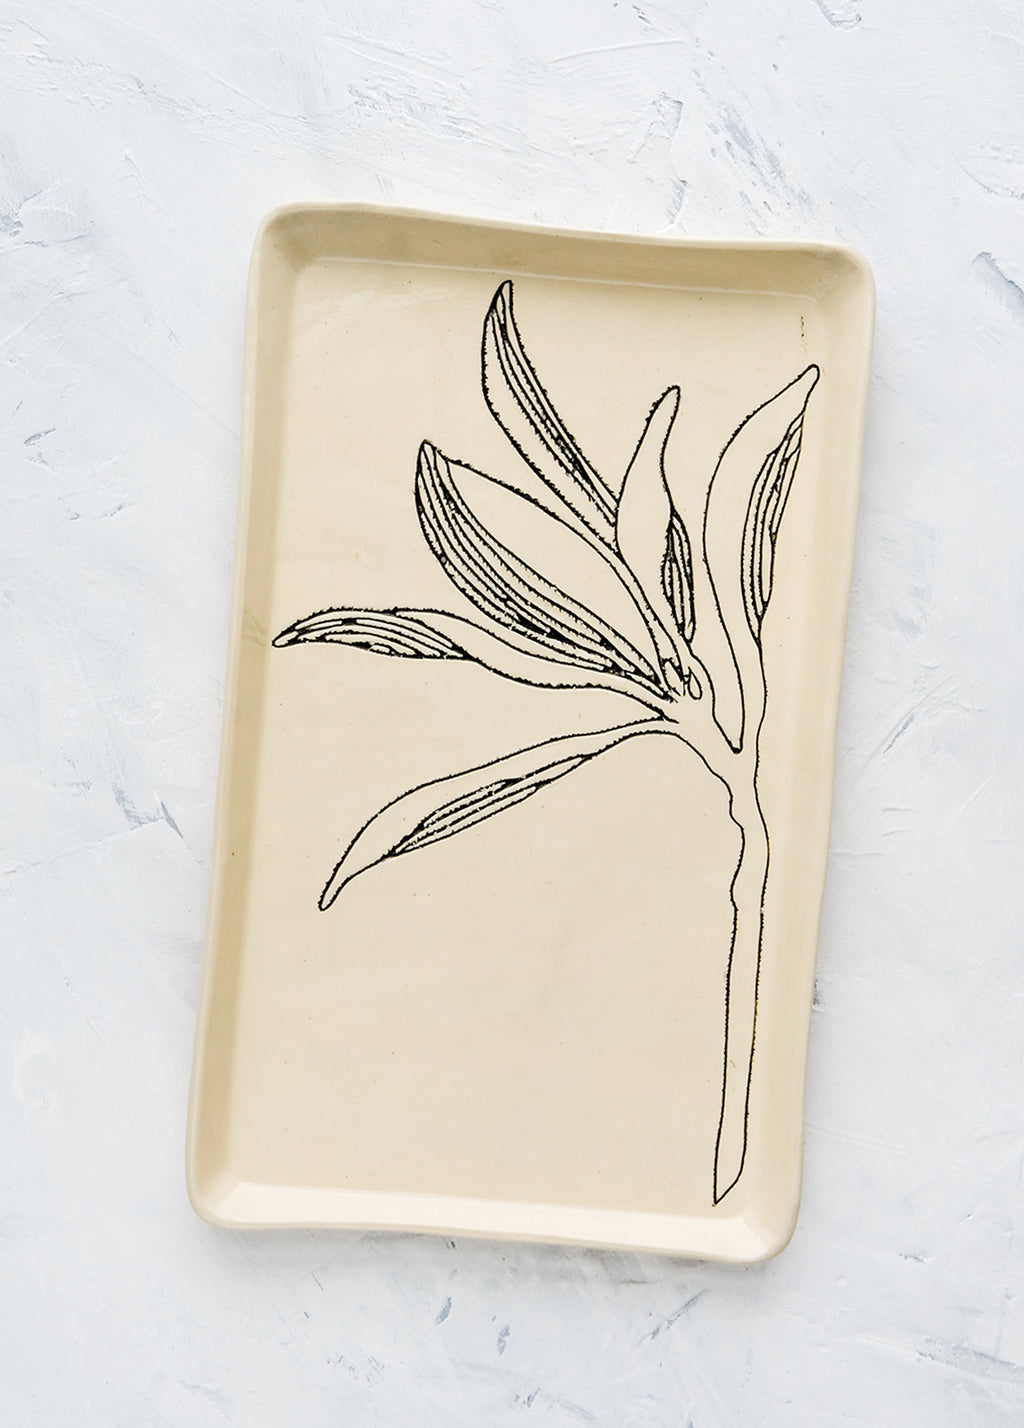 Magnolia: A rectangular ceramic tray in natural bisque color with an etched black drawing of a Magnolia branch.